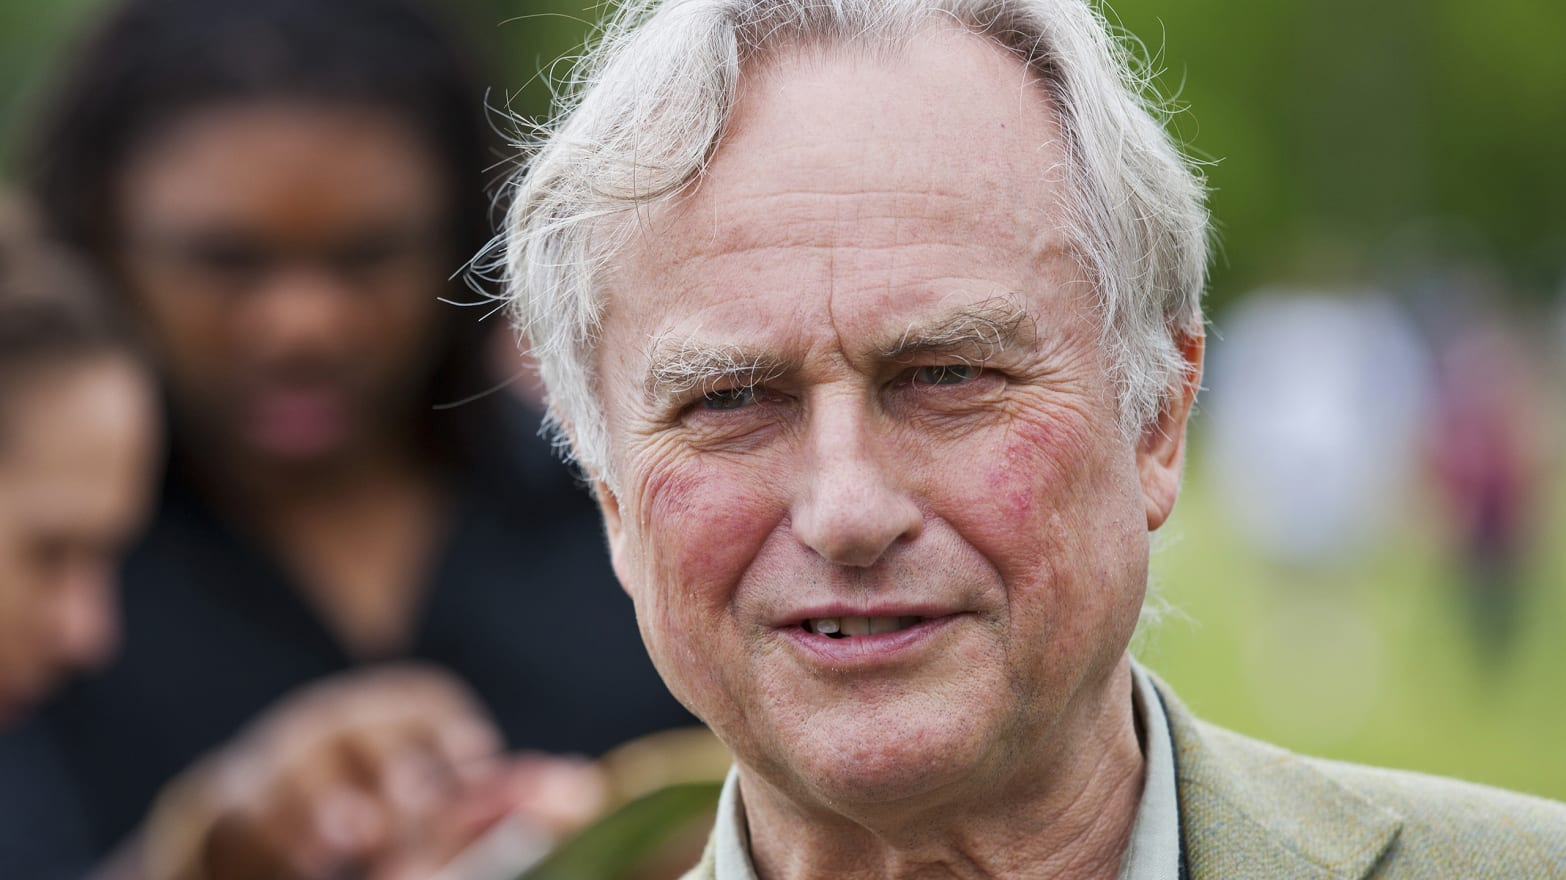 Just How Toxic Is Richard Dawkins?